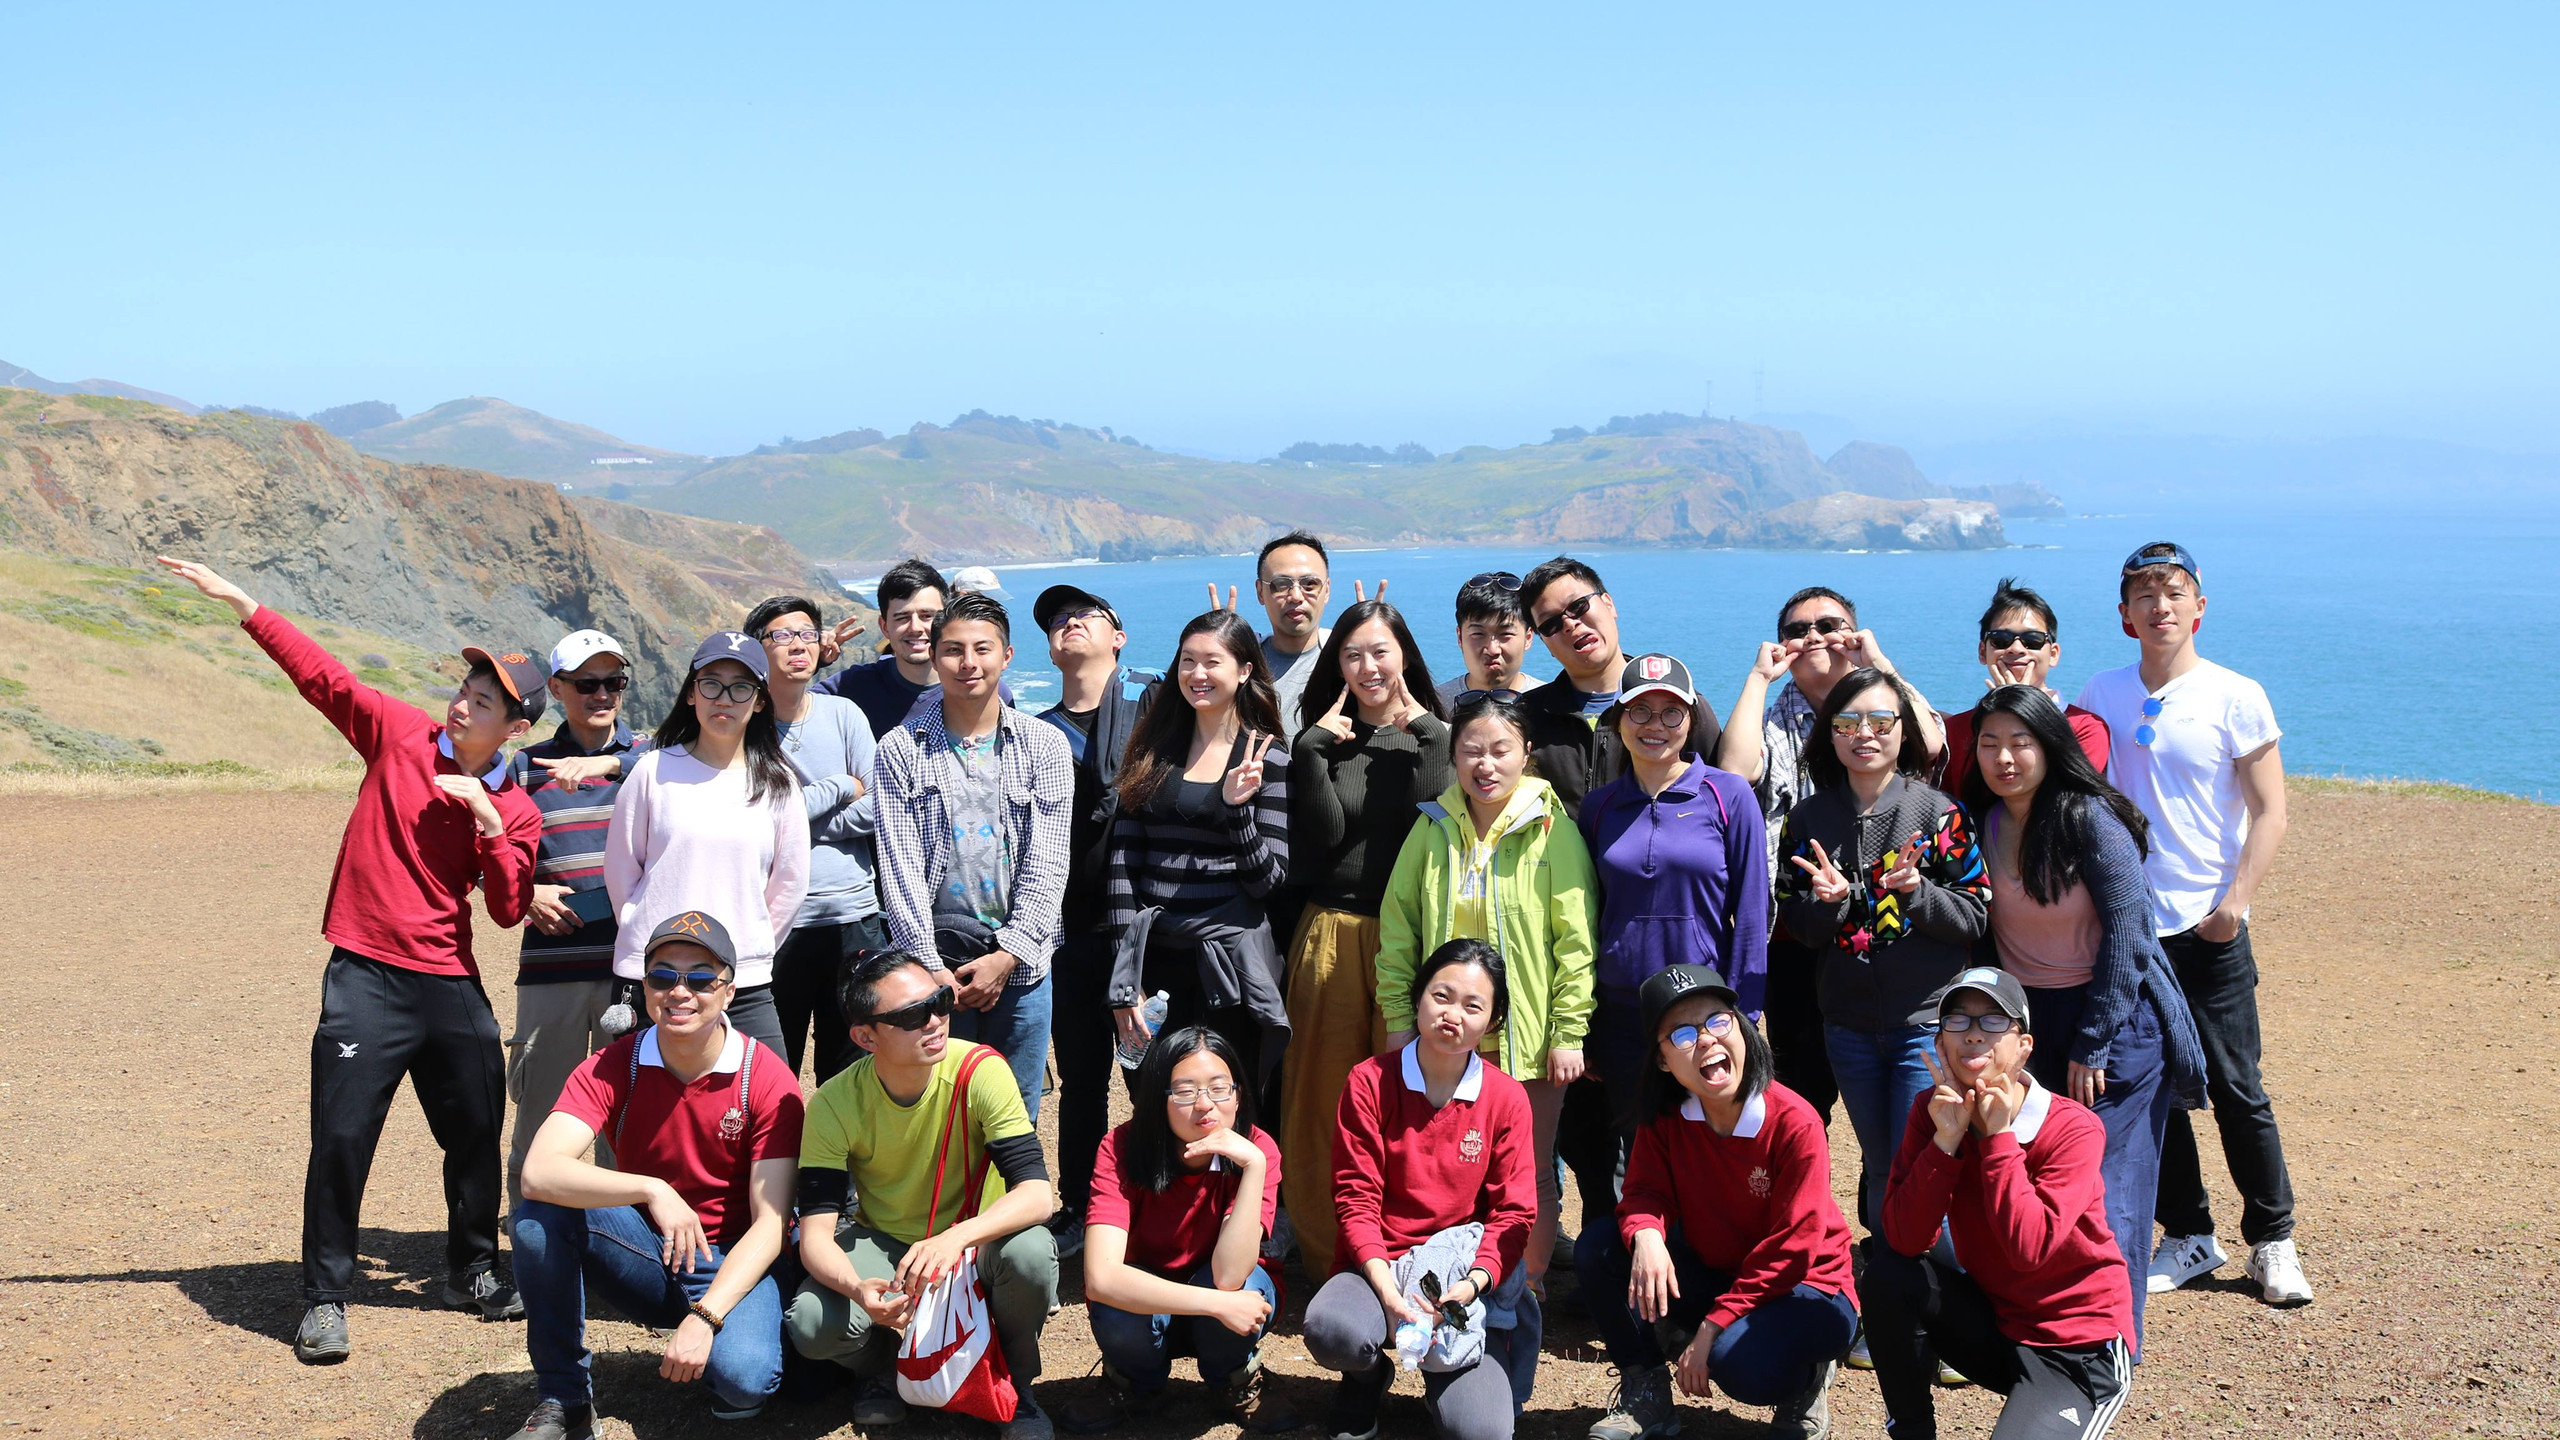 Group picture on Coastal Trail